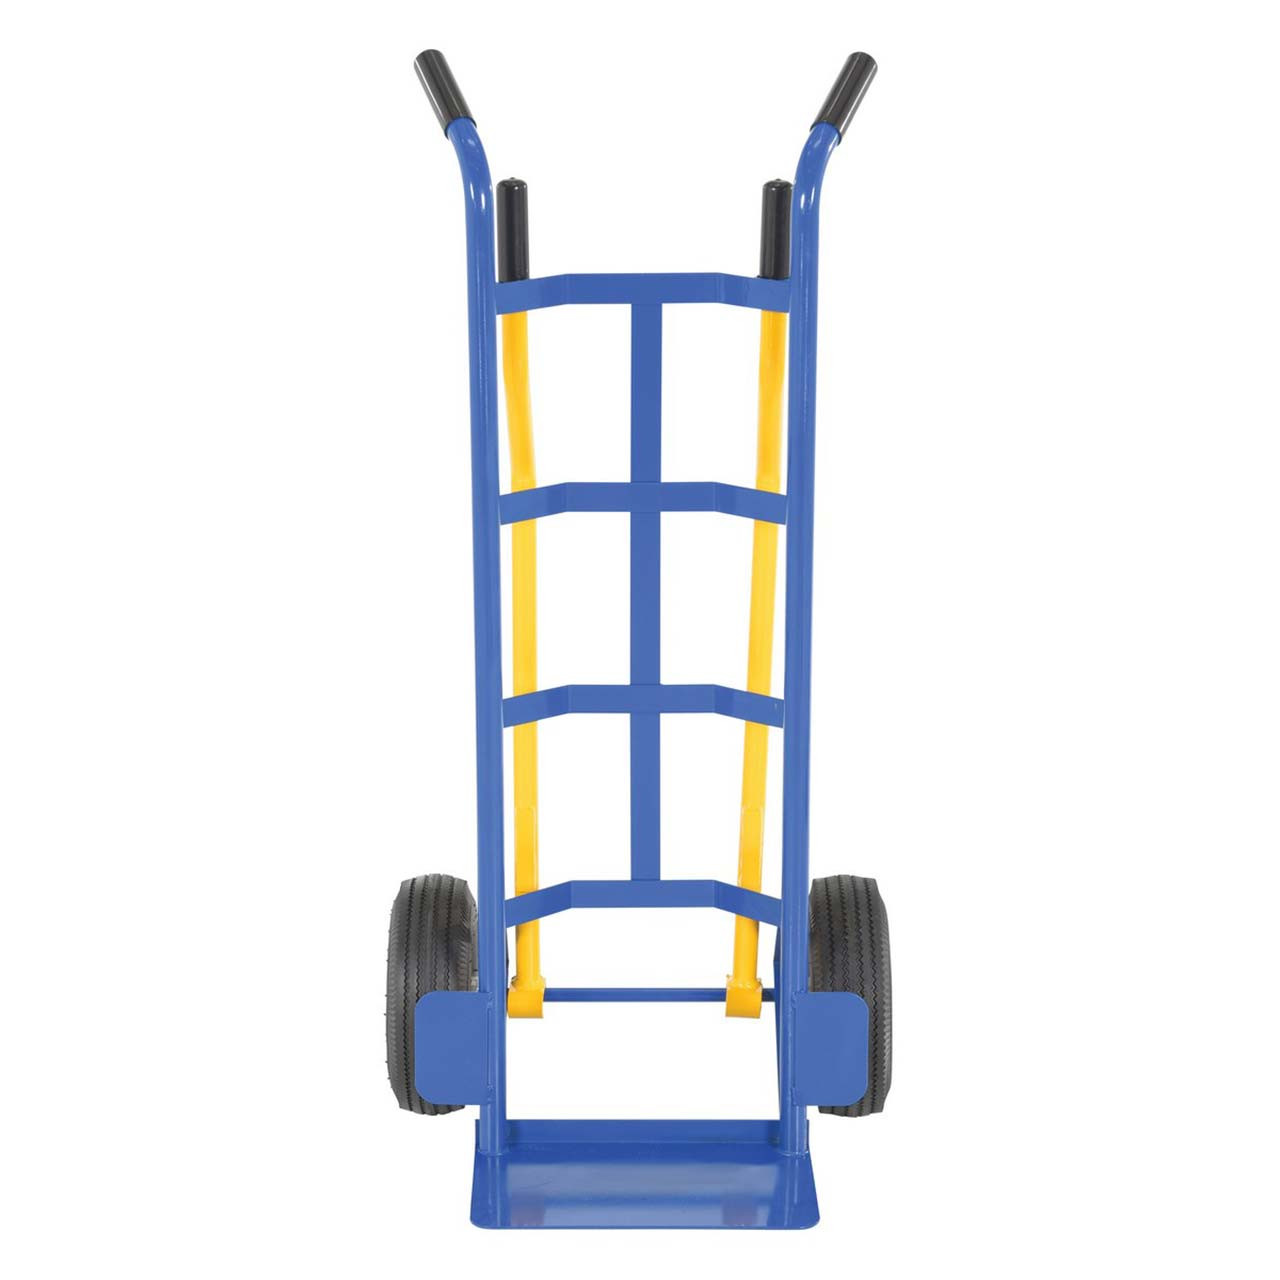 Front view of the 4 handle stair hand truck